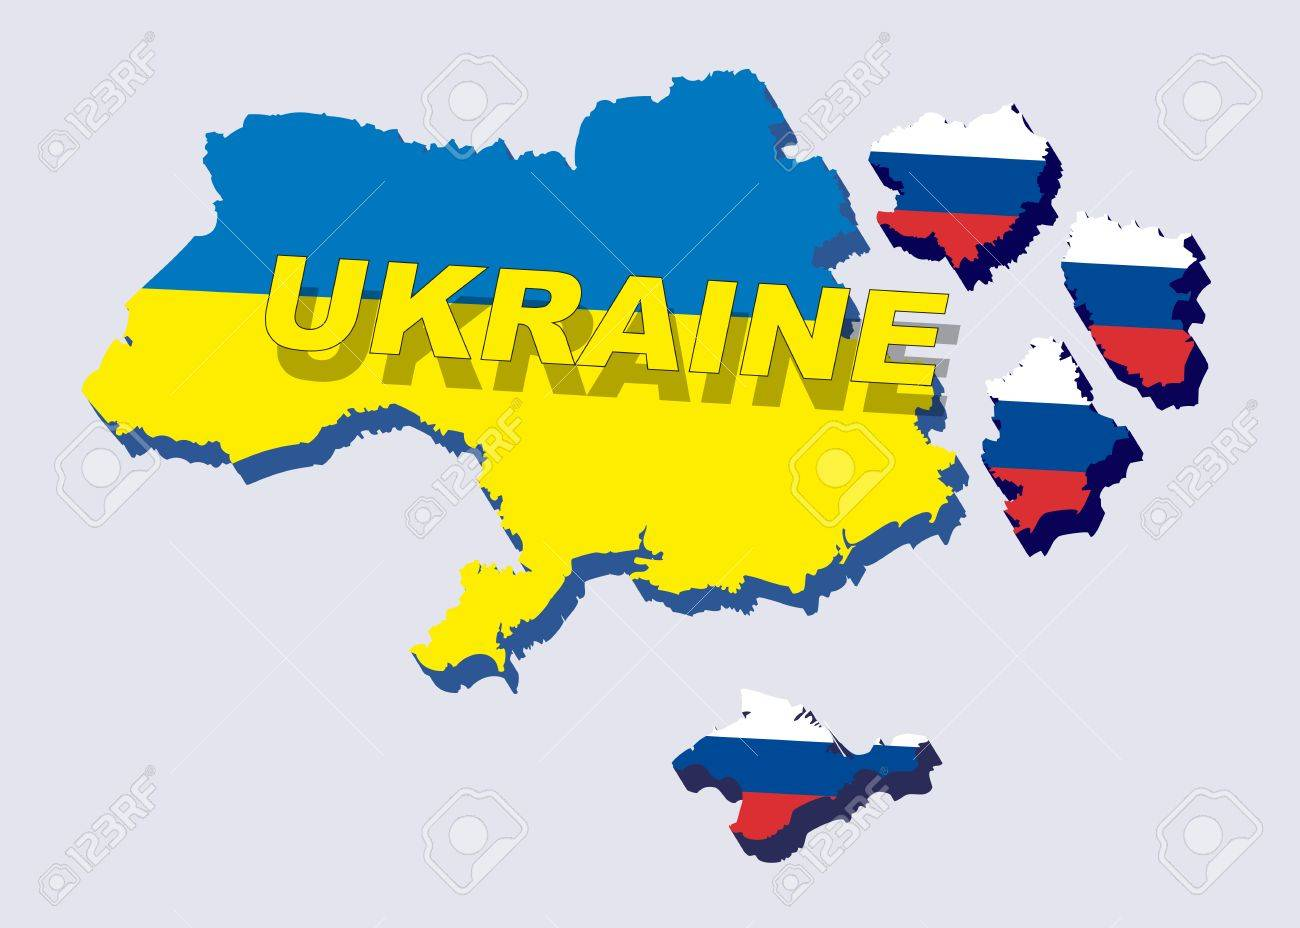 Separate into parts of Ukraine with russian flag. spring events 2014. The country is divided into regions. Vector illustration Stock Vector - 27360004